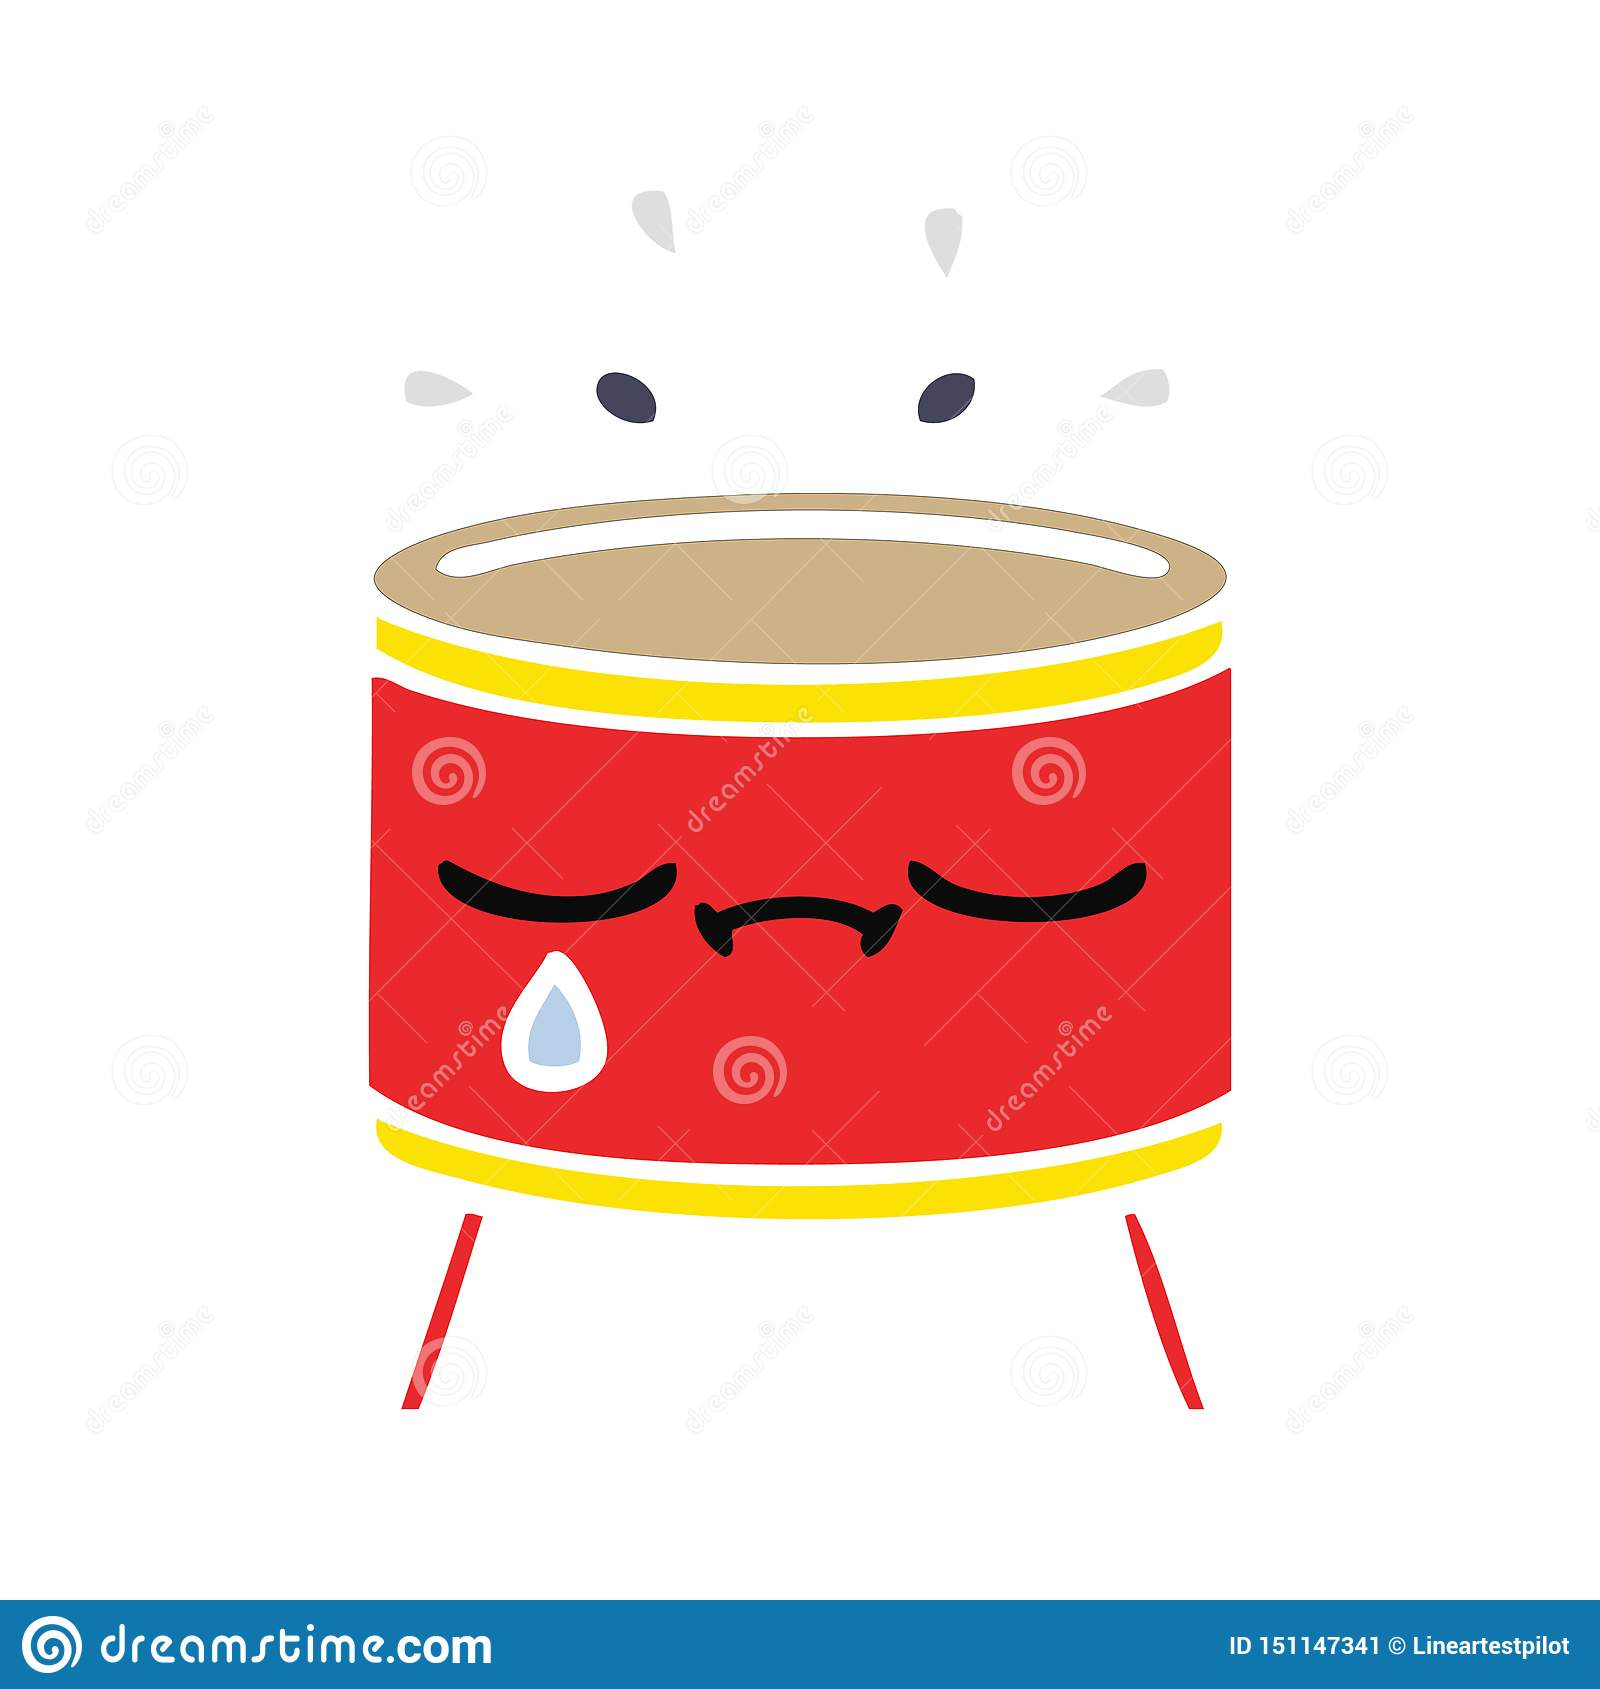 A creative flat color retro cartoon sad drum